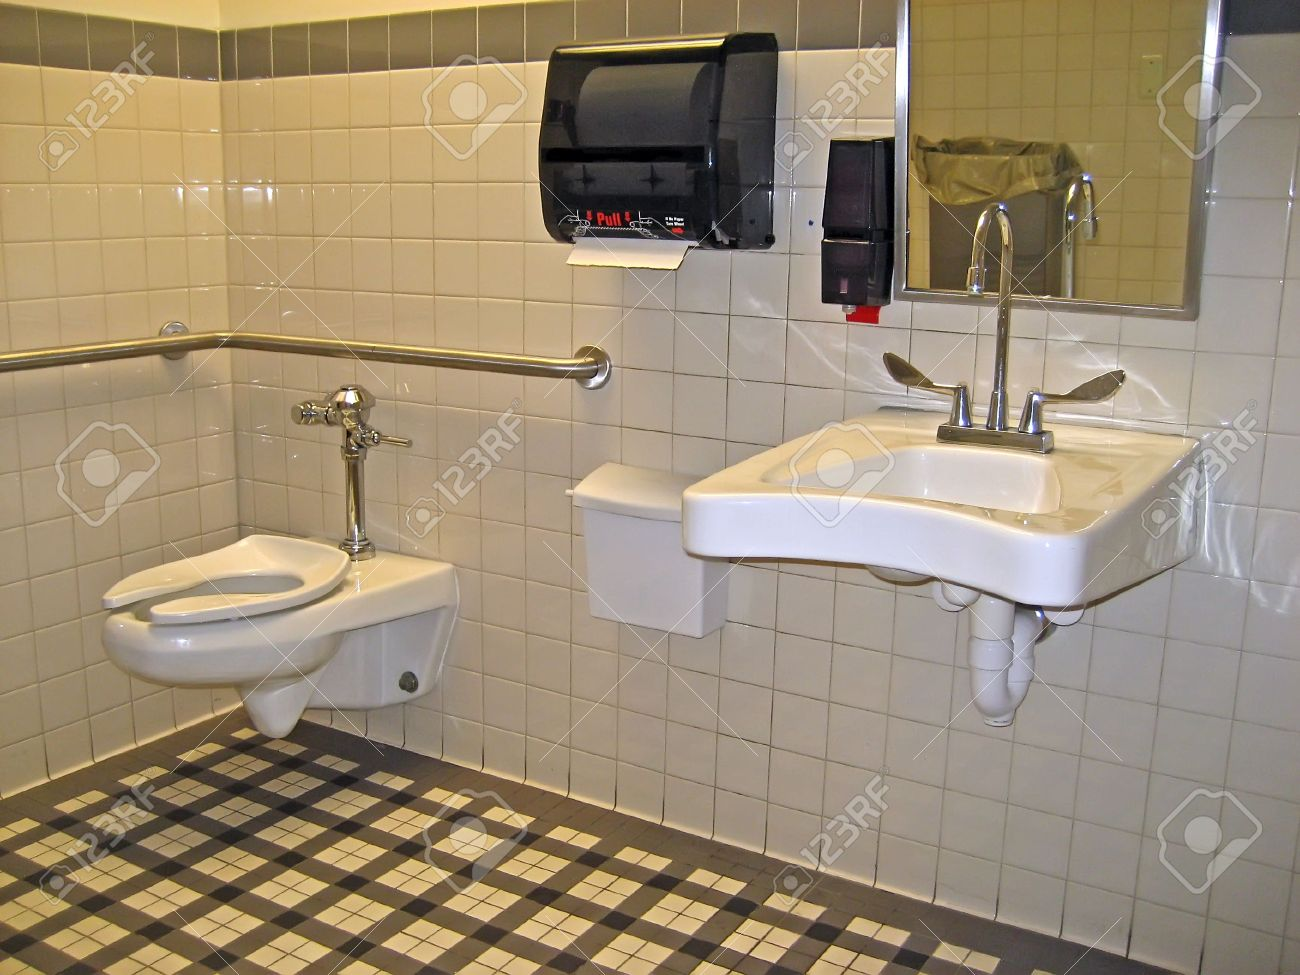 Clean Public Bathroom With Off White Tiles Stock Photo